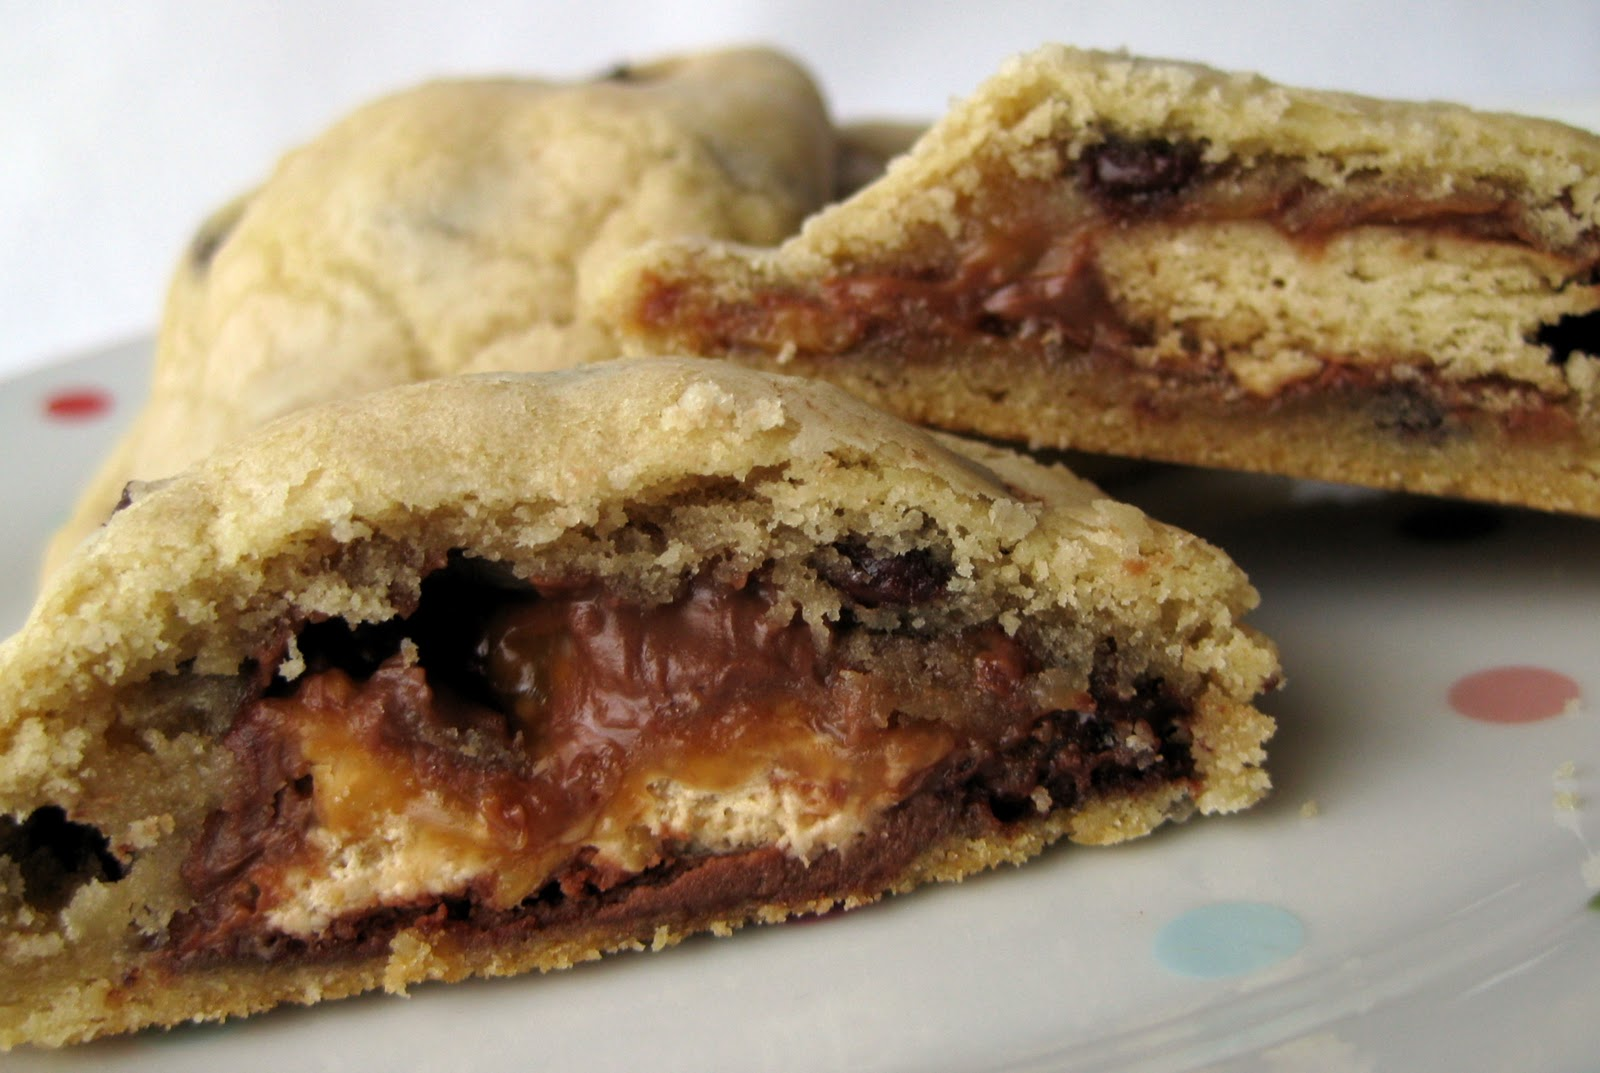 In the Long kitchen: Candy Bar Chocolate Chip Cookie Sandwiches